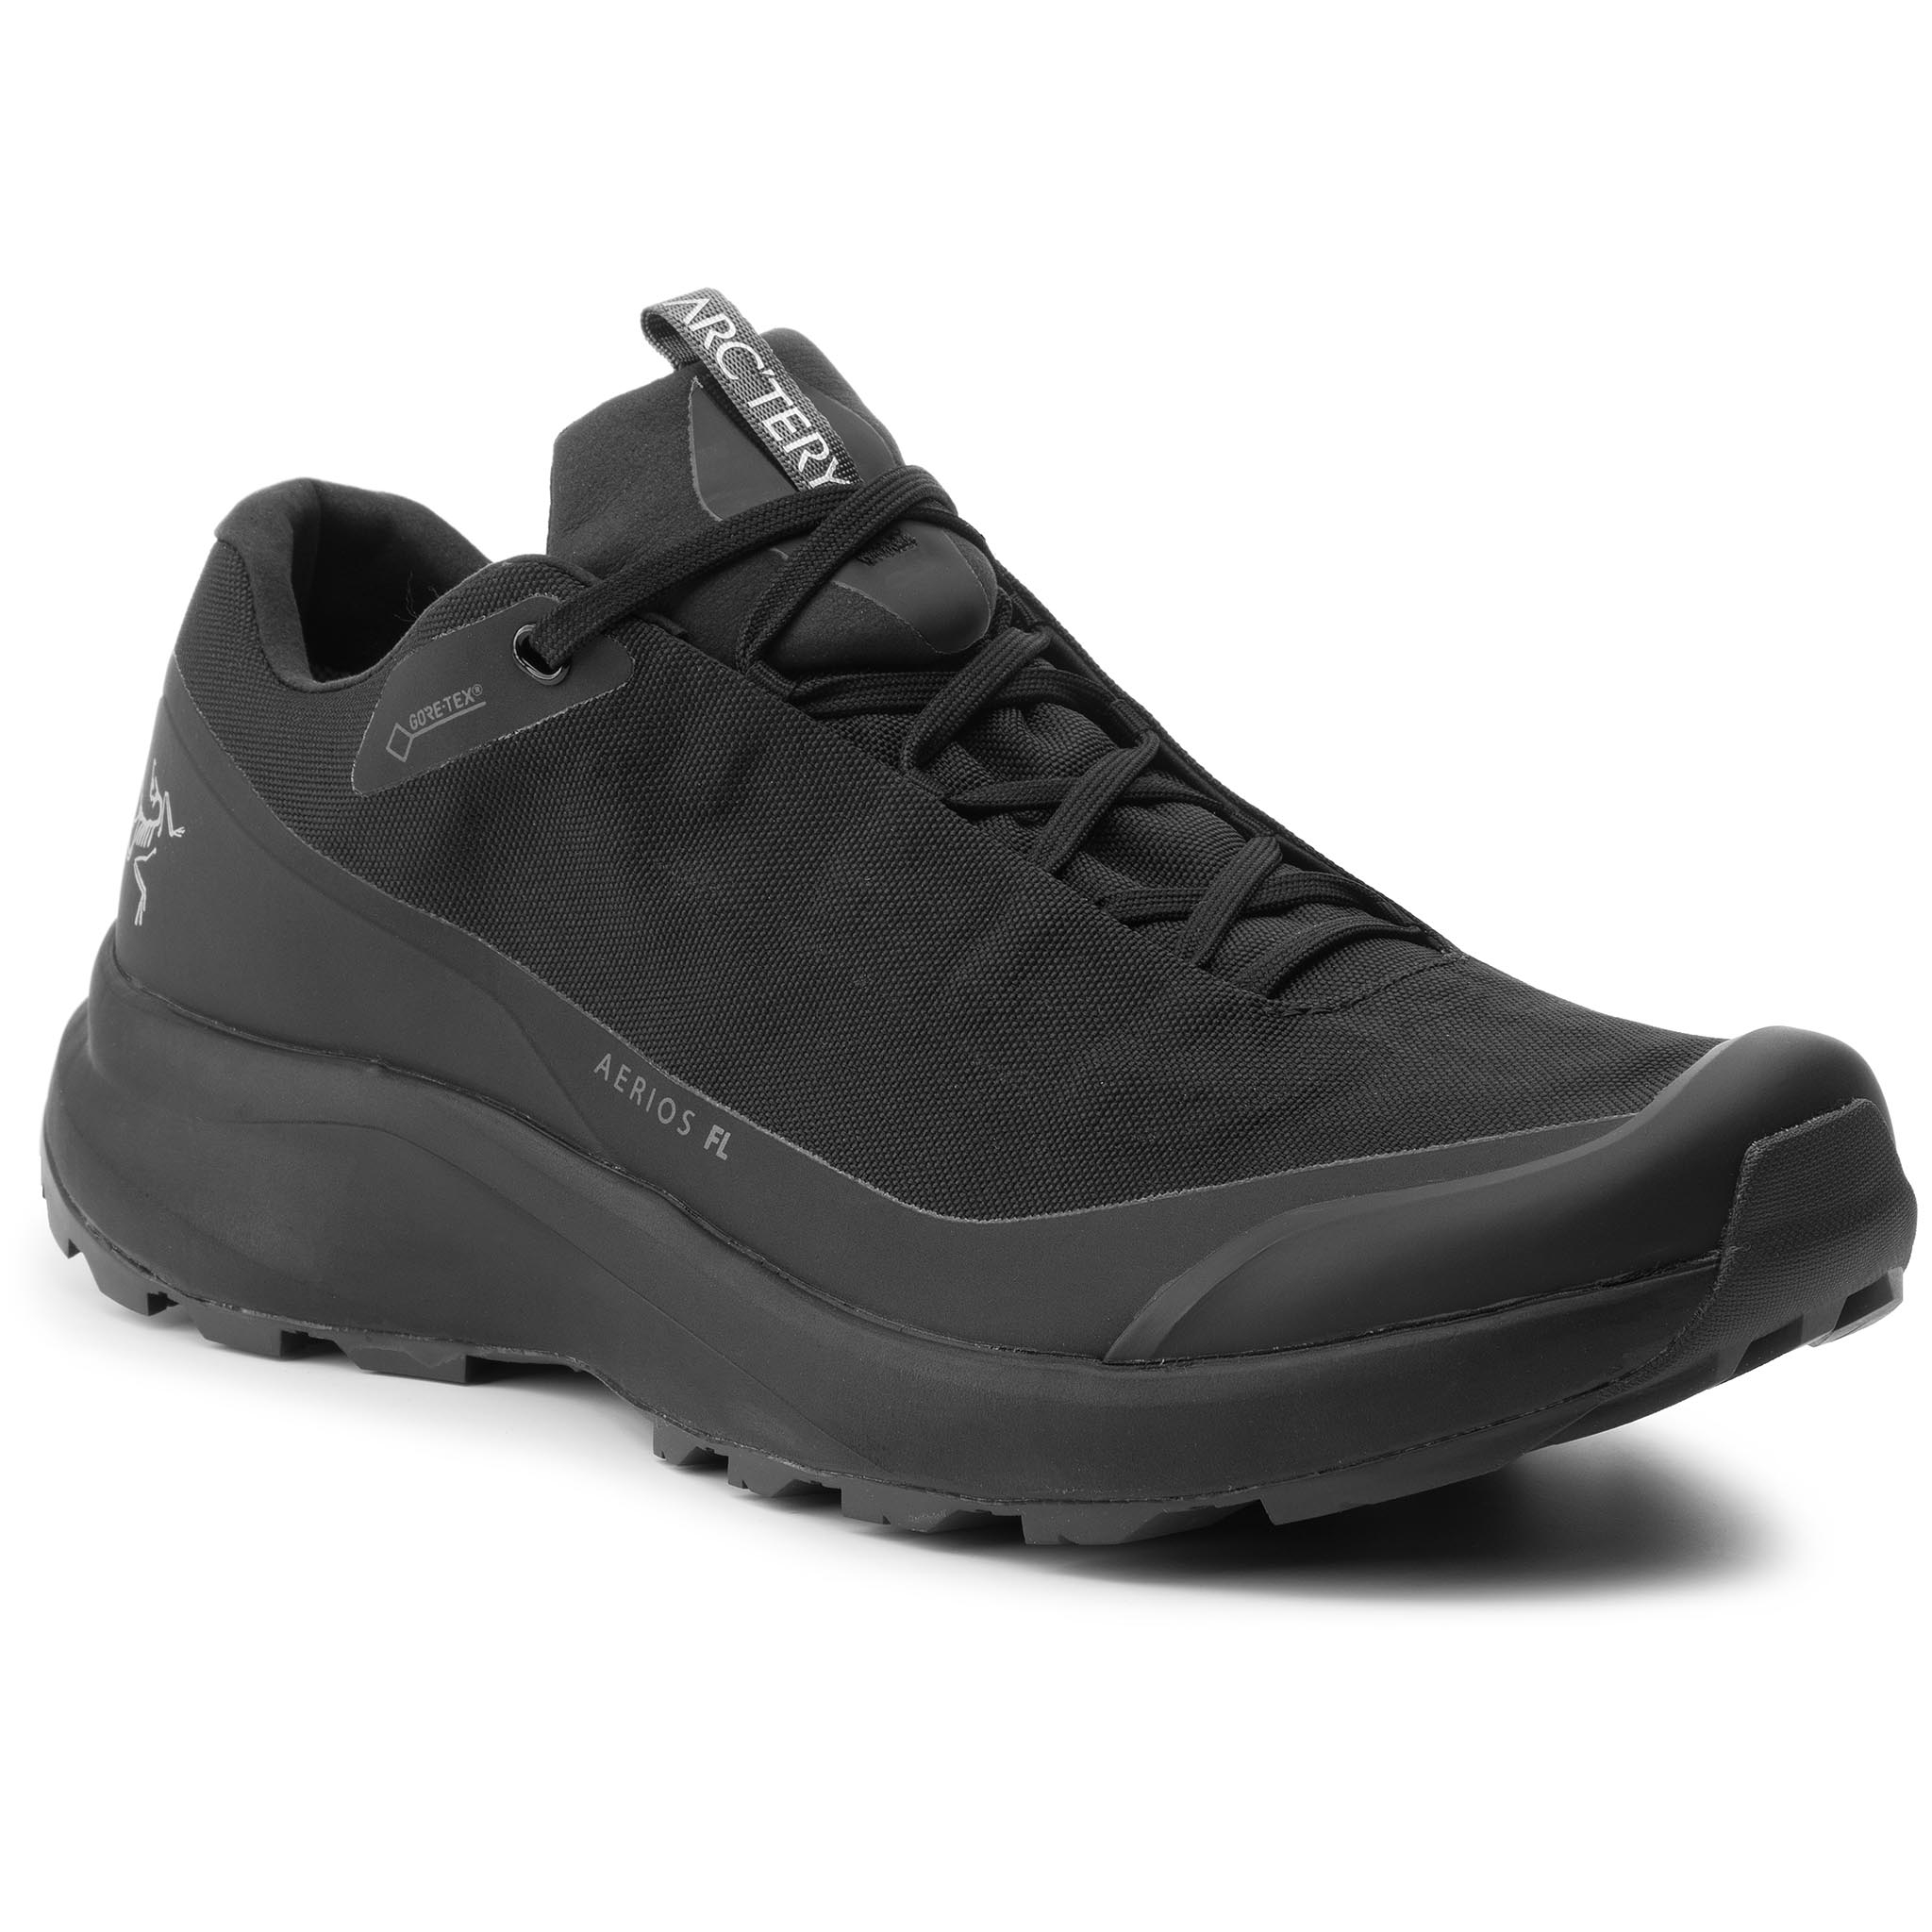 Trekkings Arc'teryx - Aerios Fl Gtx M Gore-Tex 071244-400238 G0 Black/Pilot imagine epantofi.ro 2021